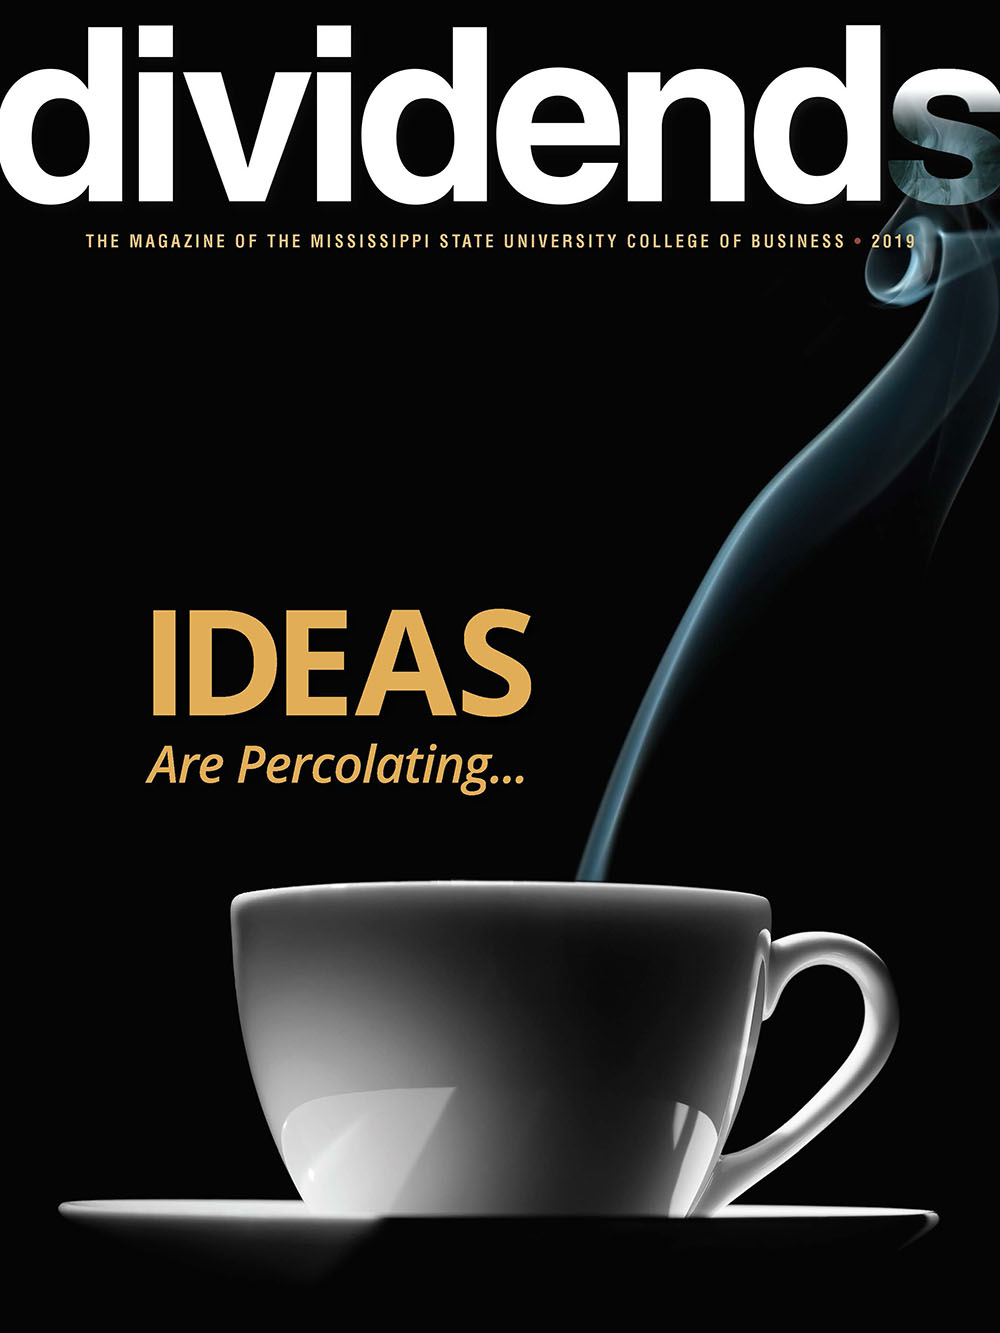 Dividends Magazine, 2019 Edition